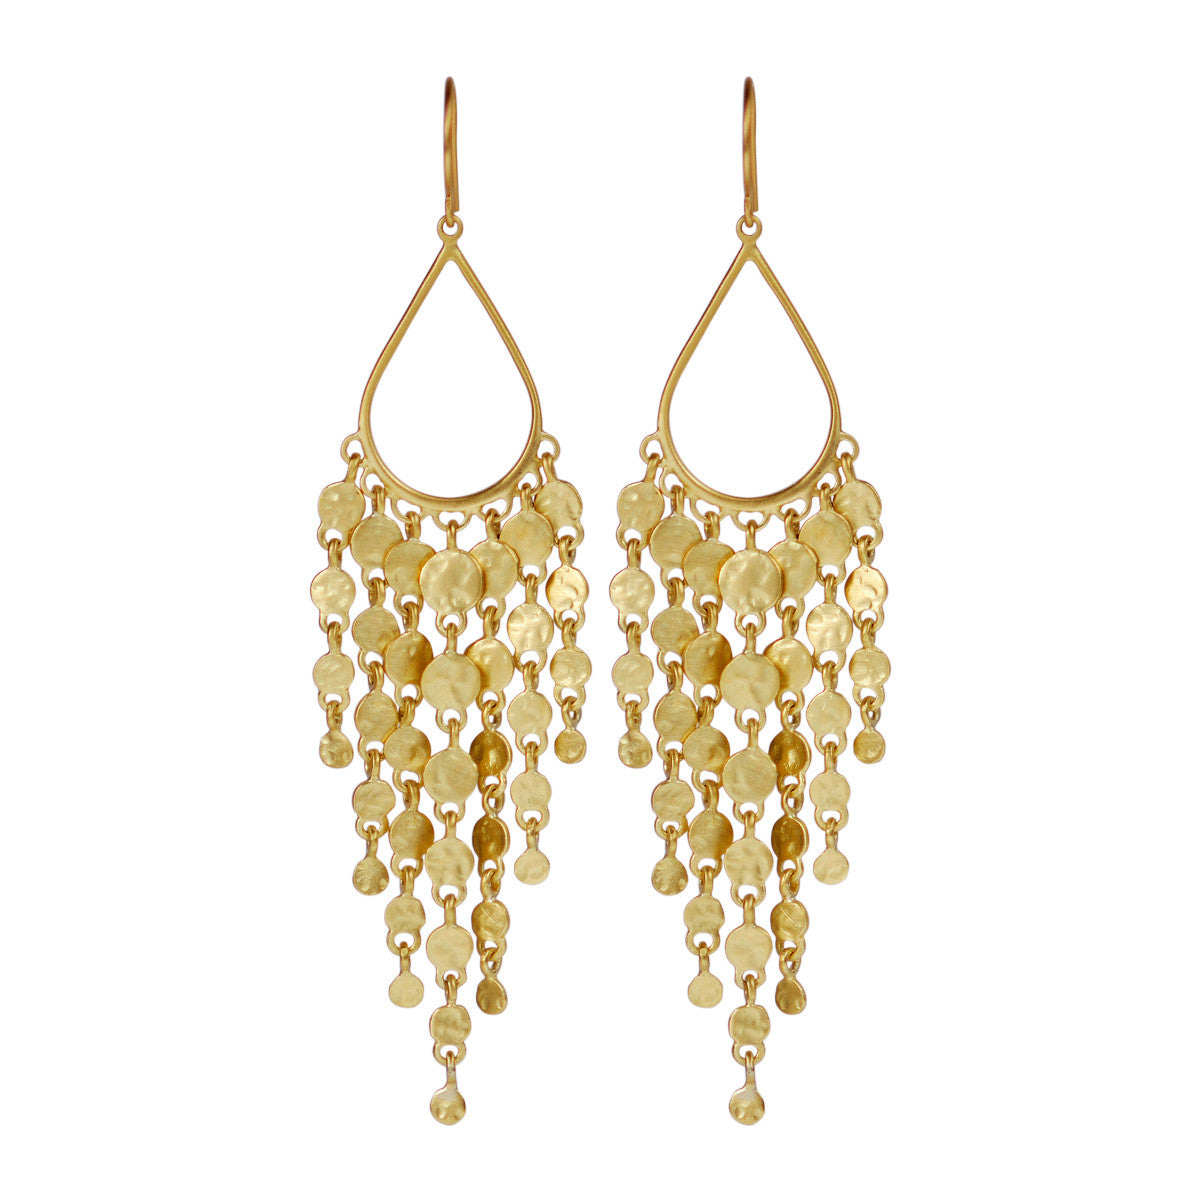 18K Gold Teardrop Hammered Disc Fringe Earrings